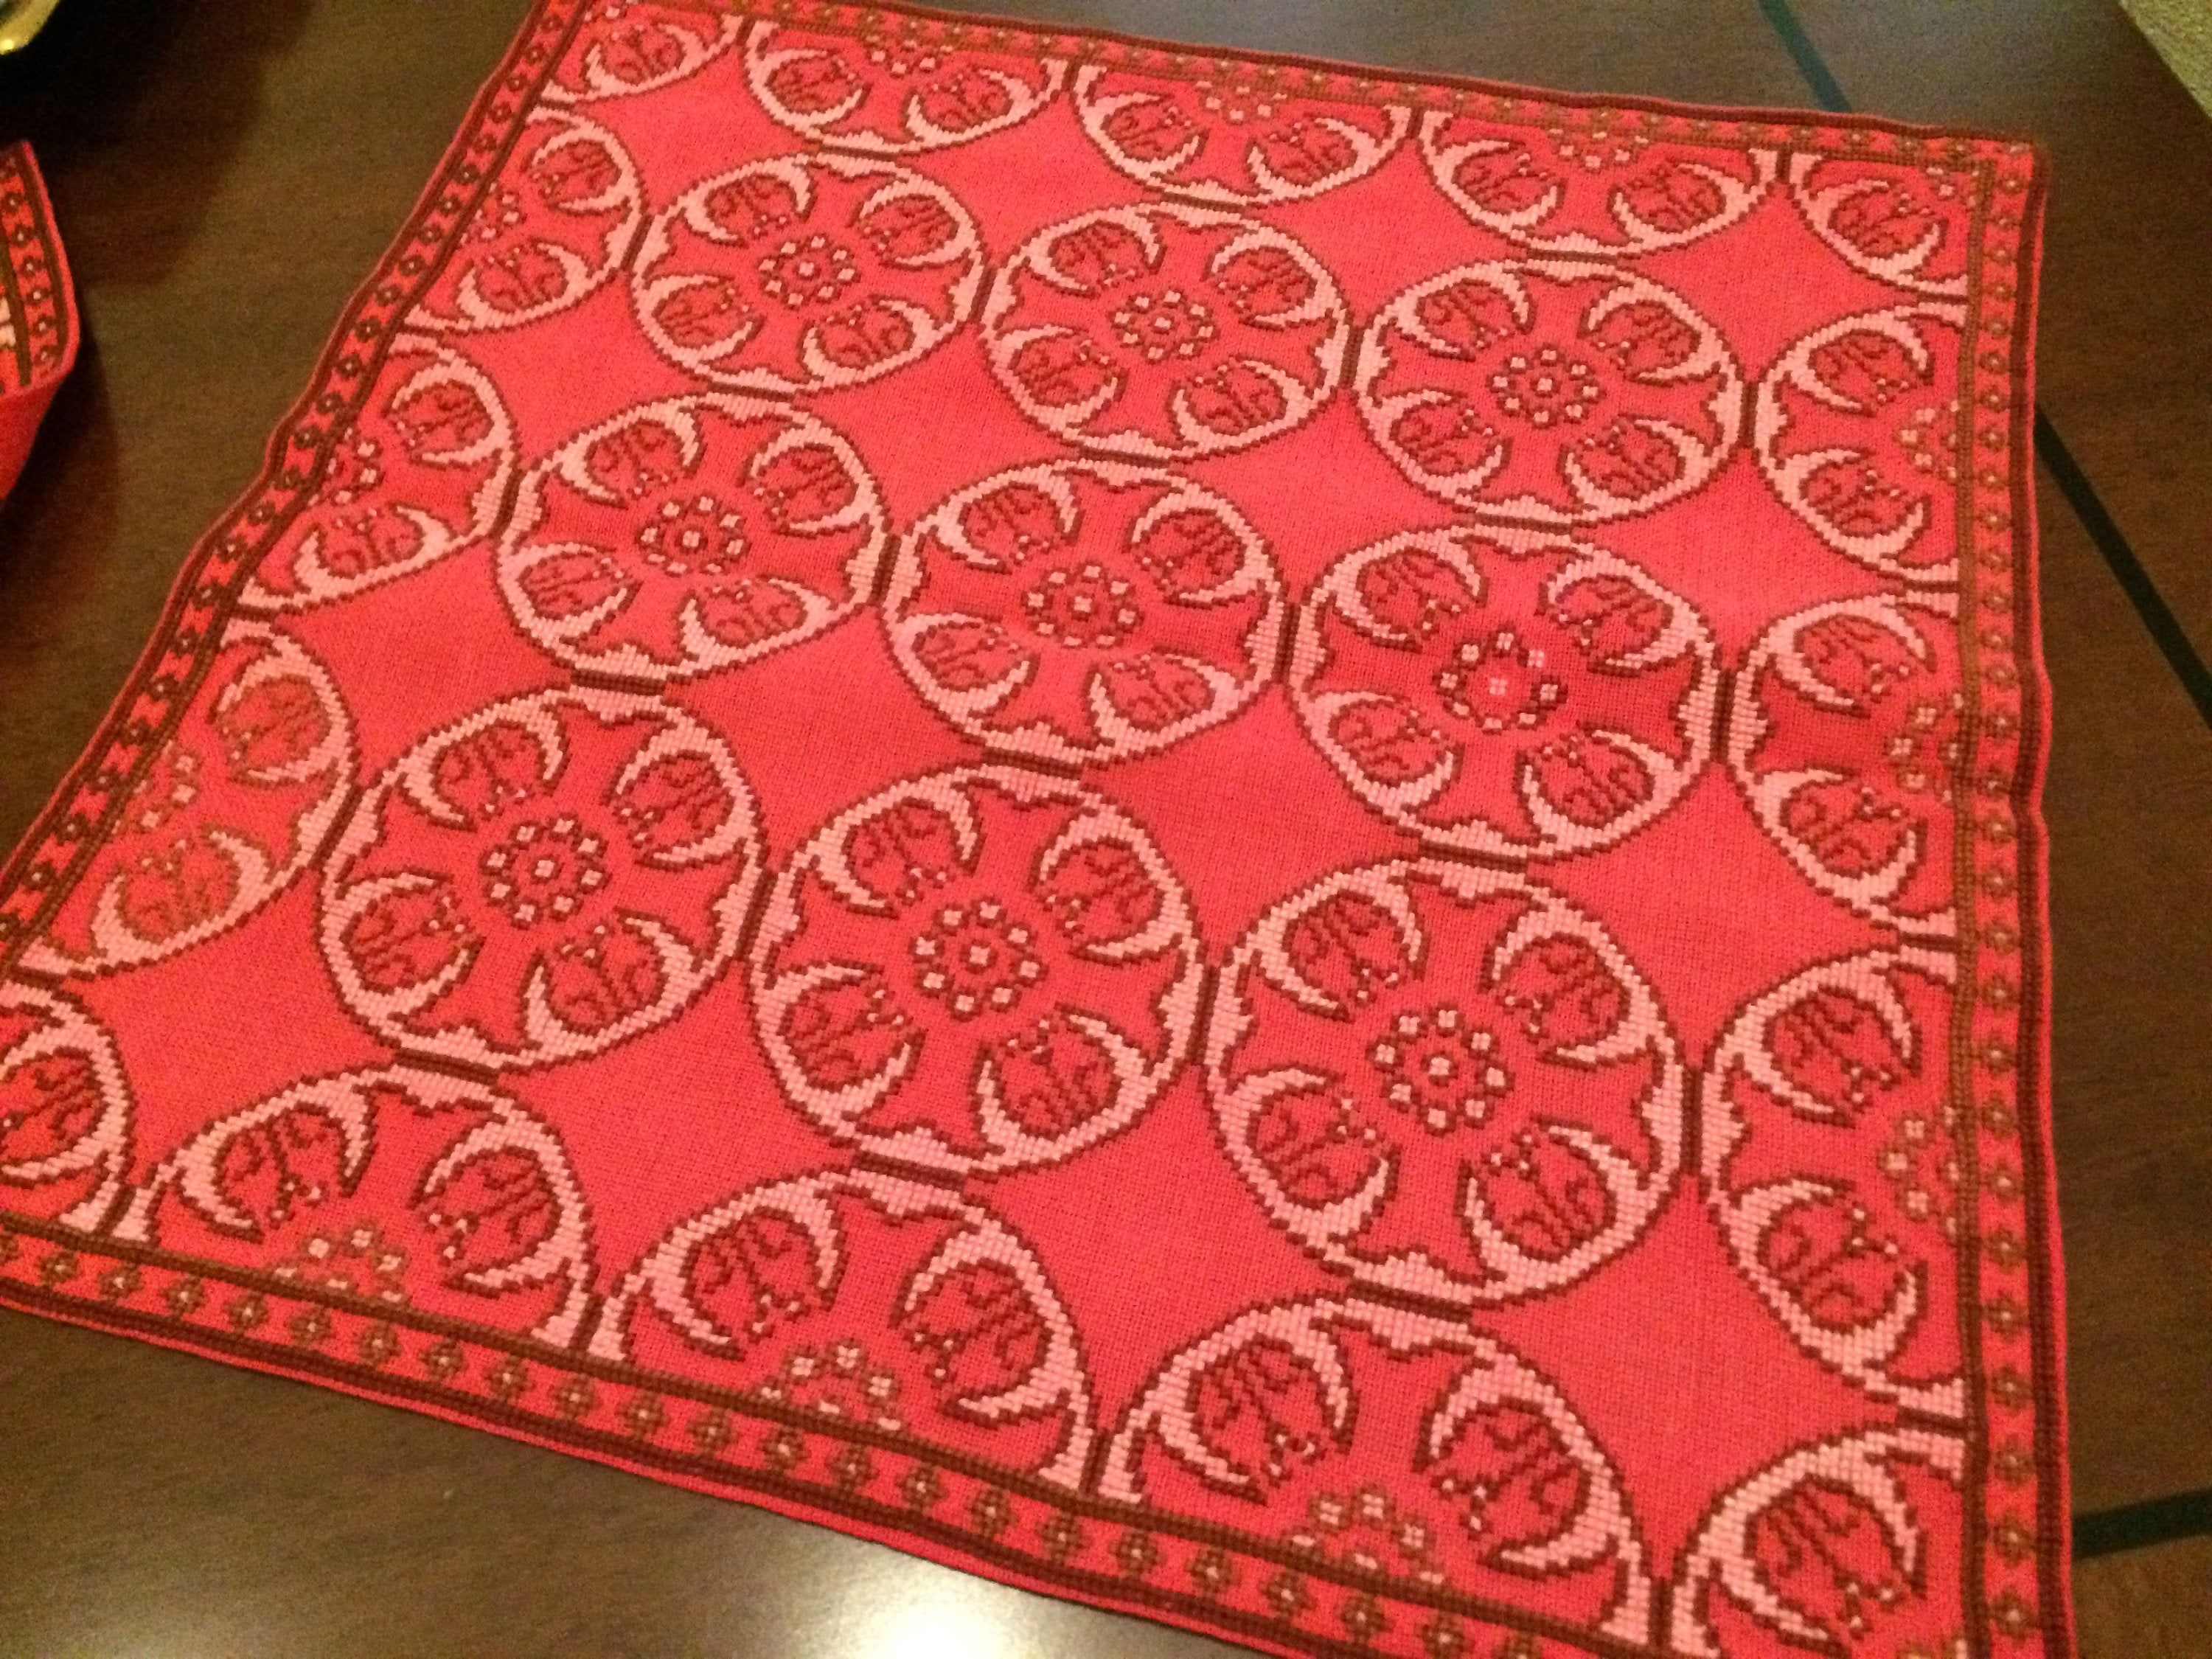 Handmade doily/ cross emboider/ doily/ red emroidered doily/ tablecloth #cotton #doilies #SquareDoilies #tablecloth #TableDecor #linen #RedDoilies #HomeDecor #NeedleWork #handmade